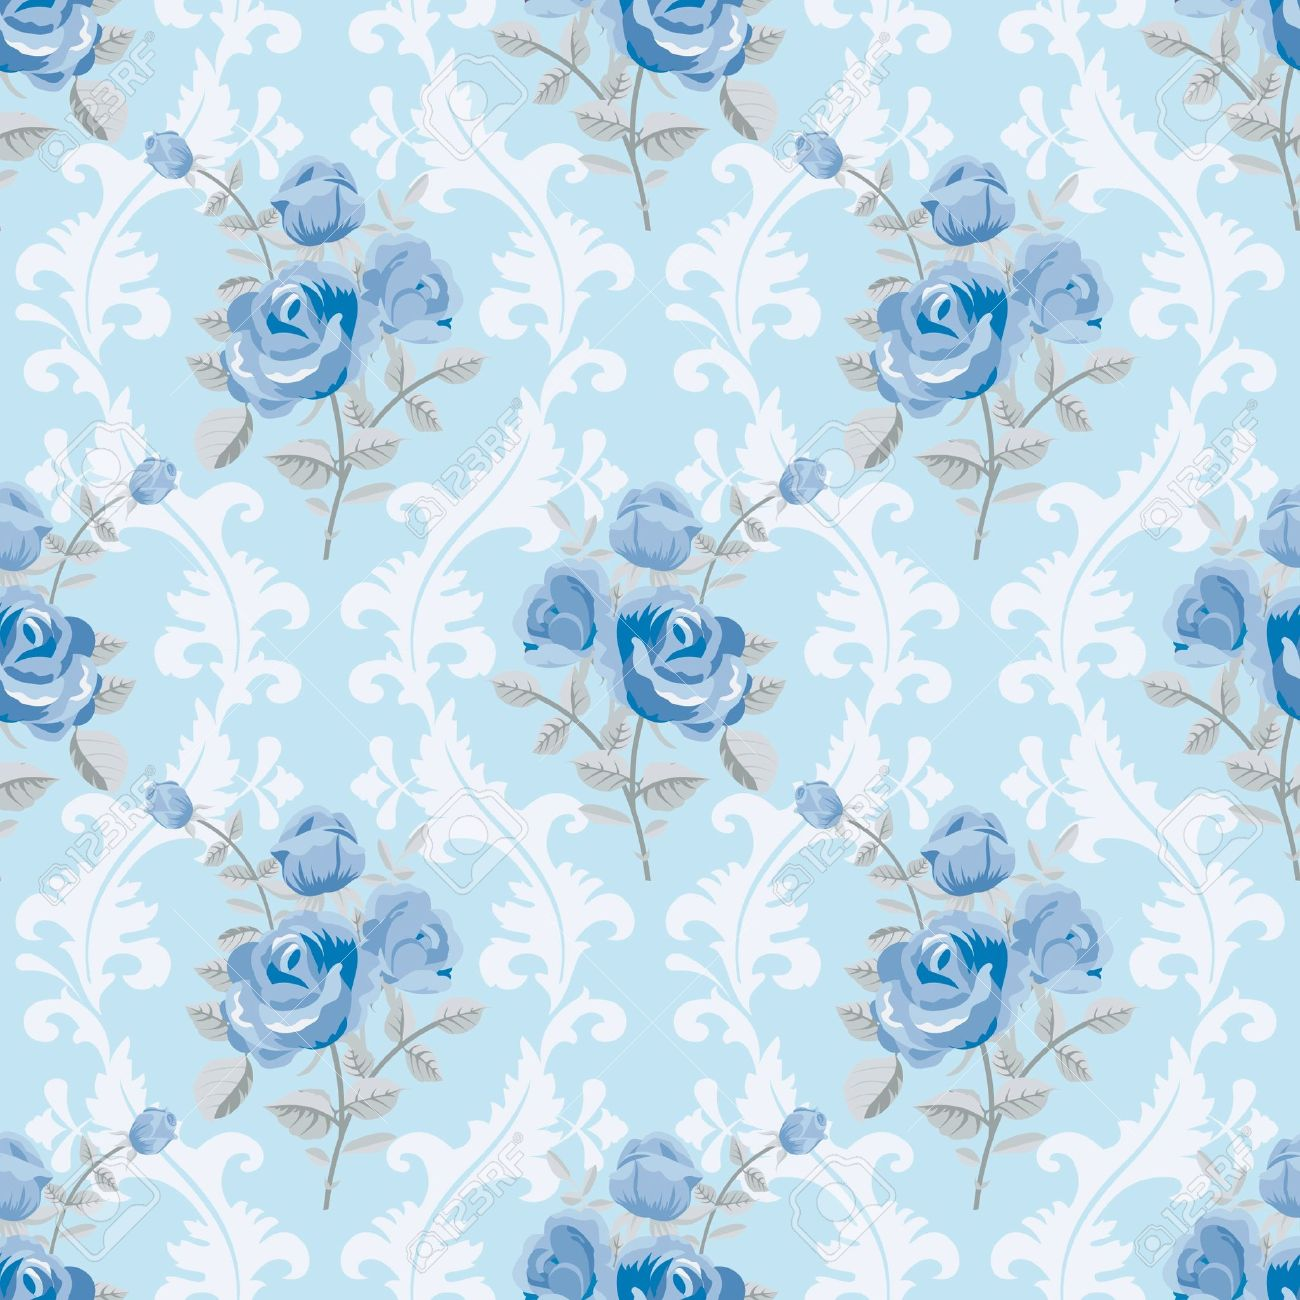 Blue Roses Floral Wallpaper Stock Vector